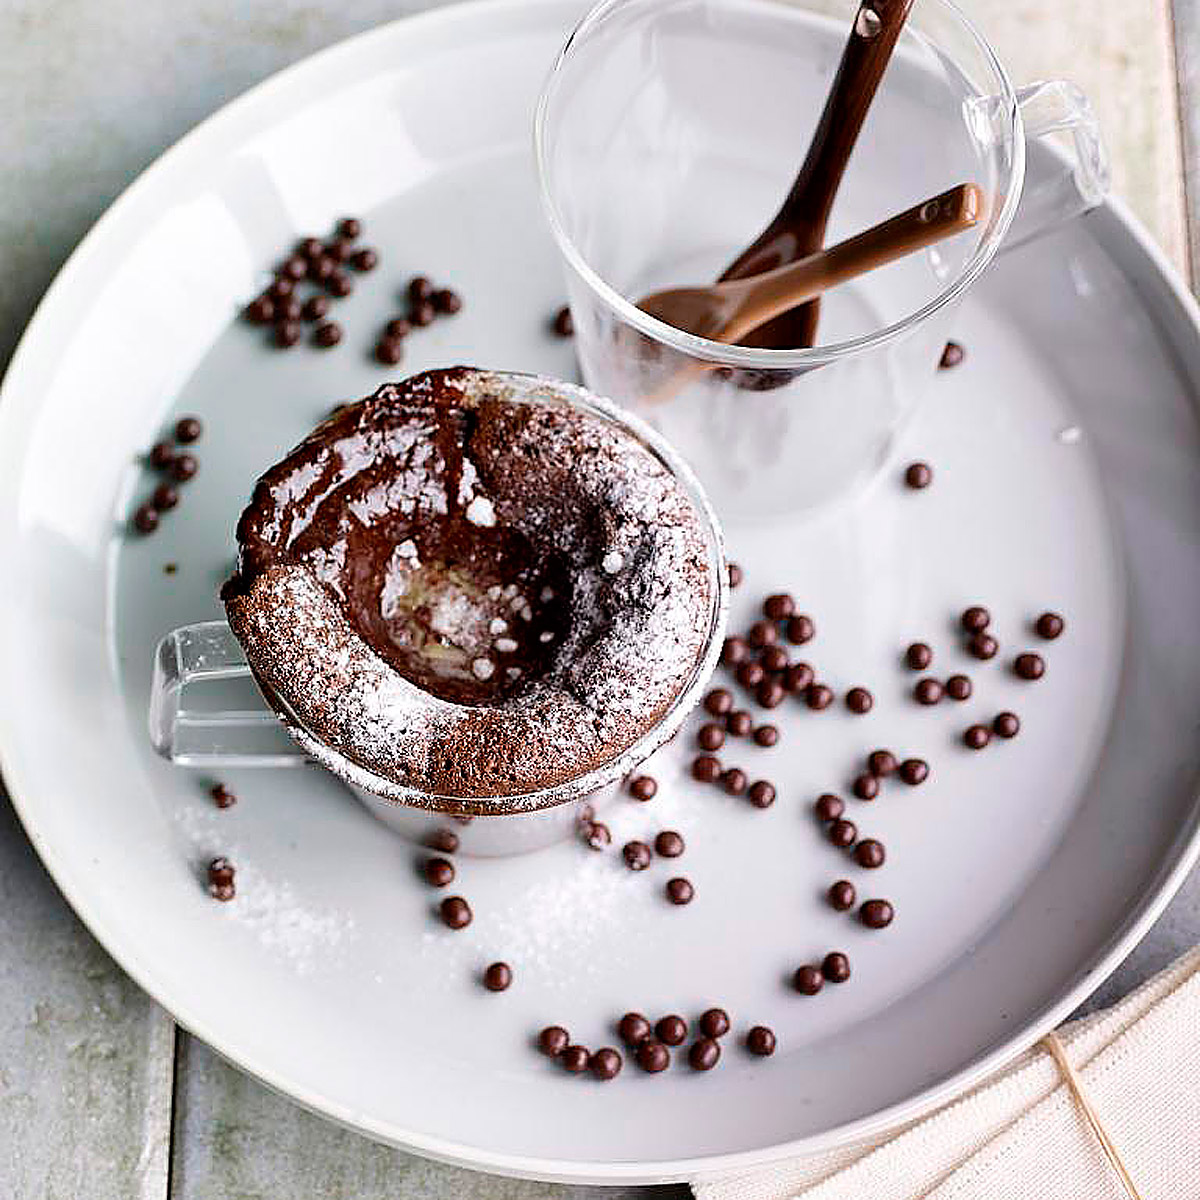 Soufflé coulant de chocolate